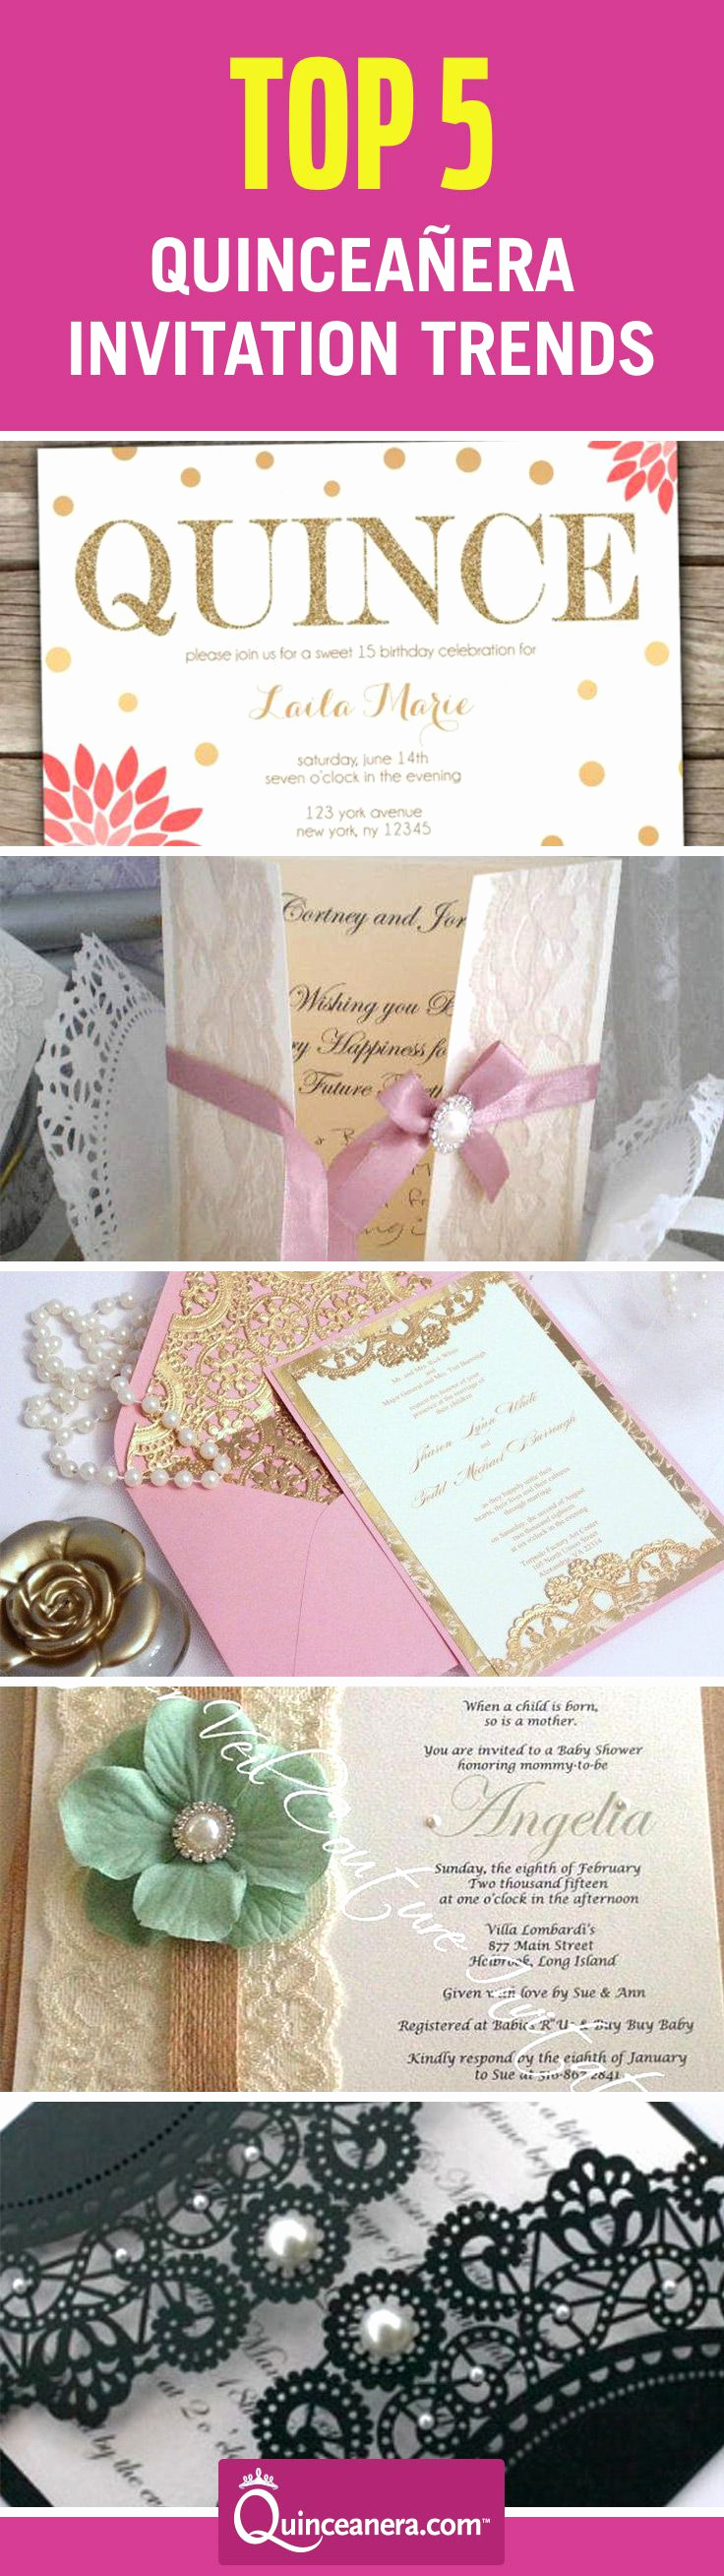 Quinceanera Invitation Ideas Pinterest Lovely 25 Best Ideas About Quinceanera Invitations On Pinterest